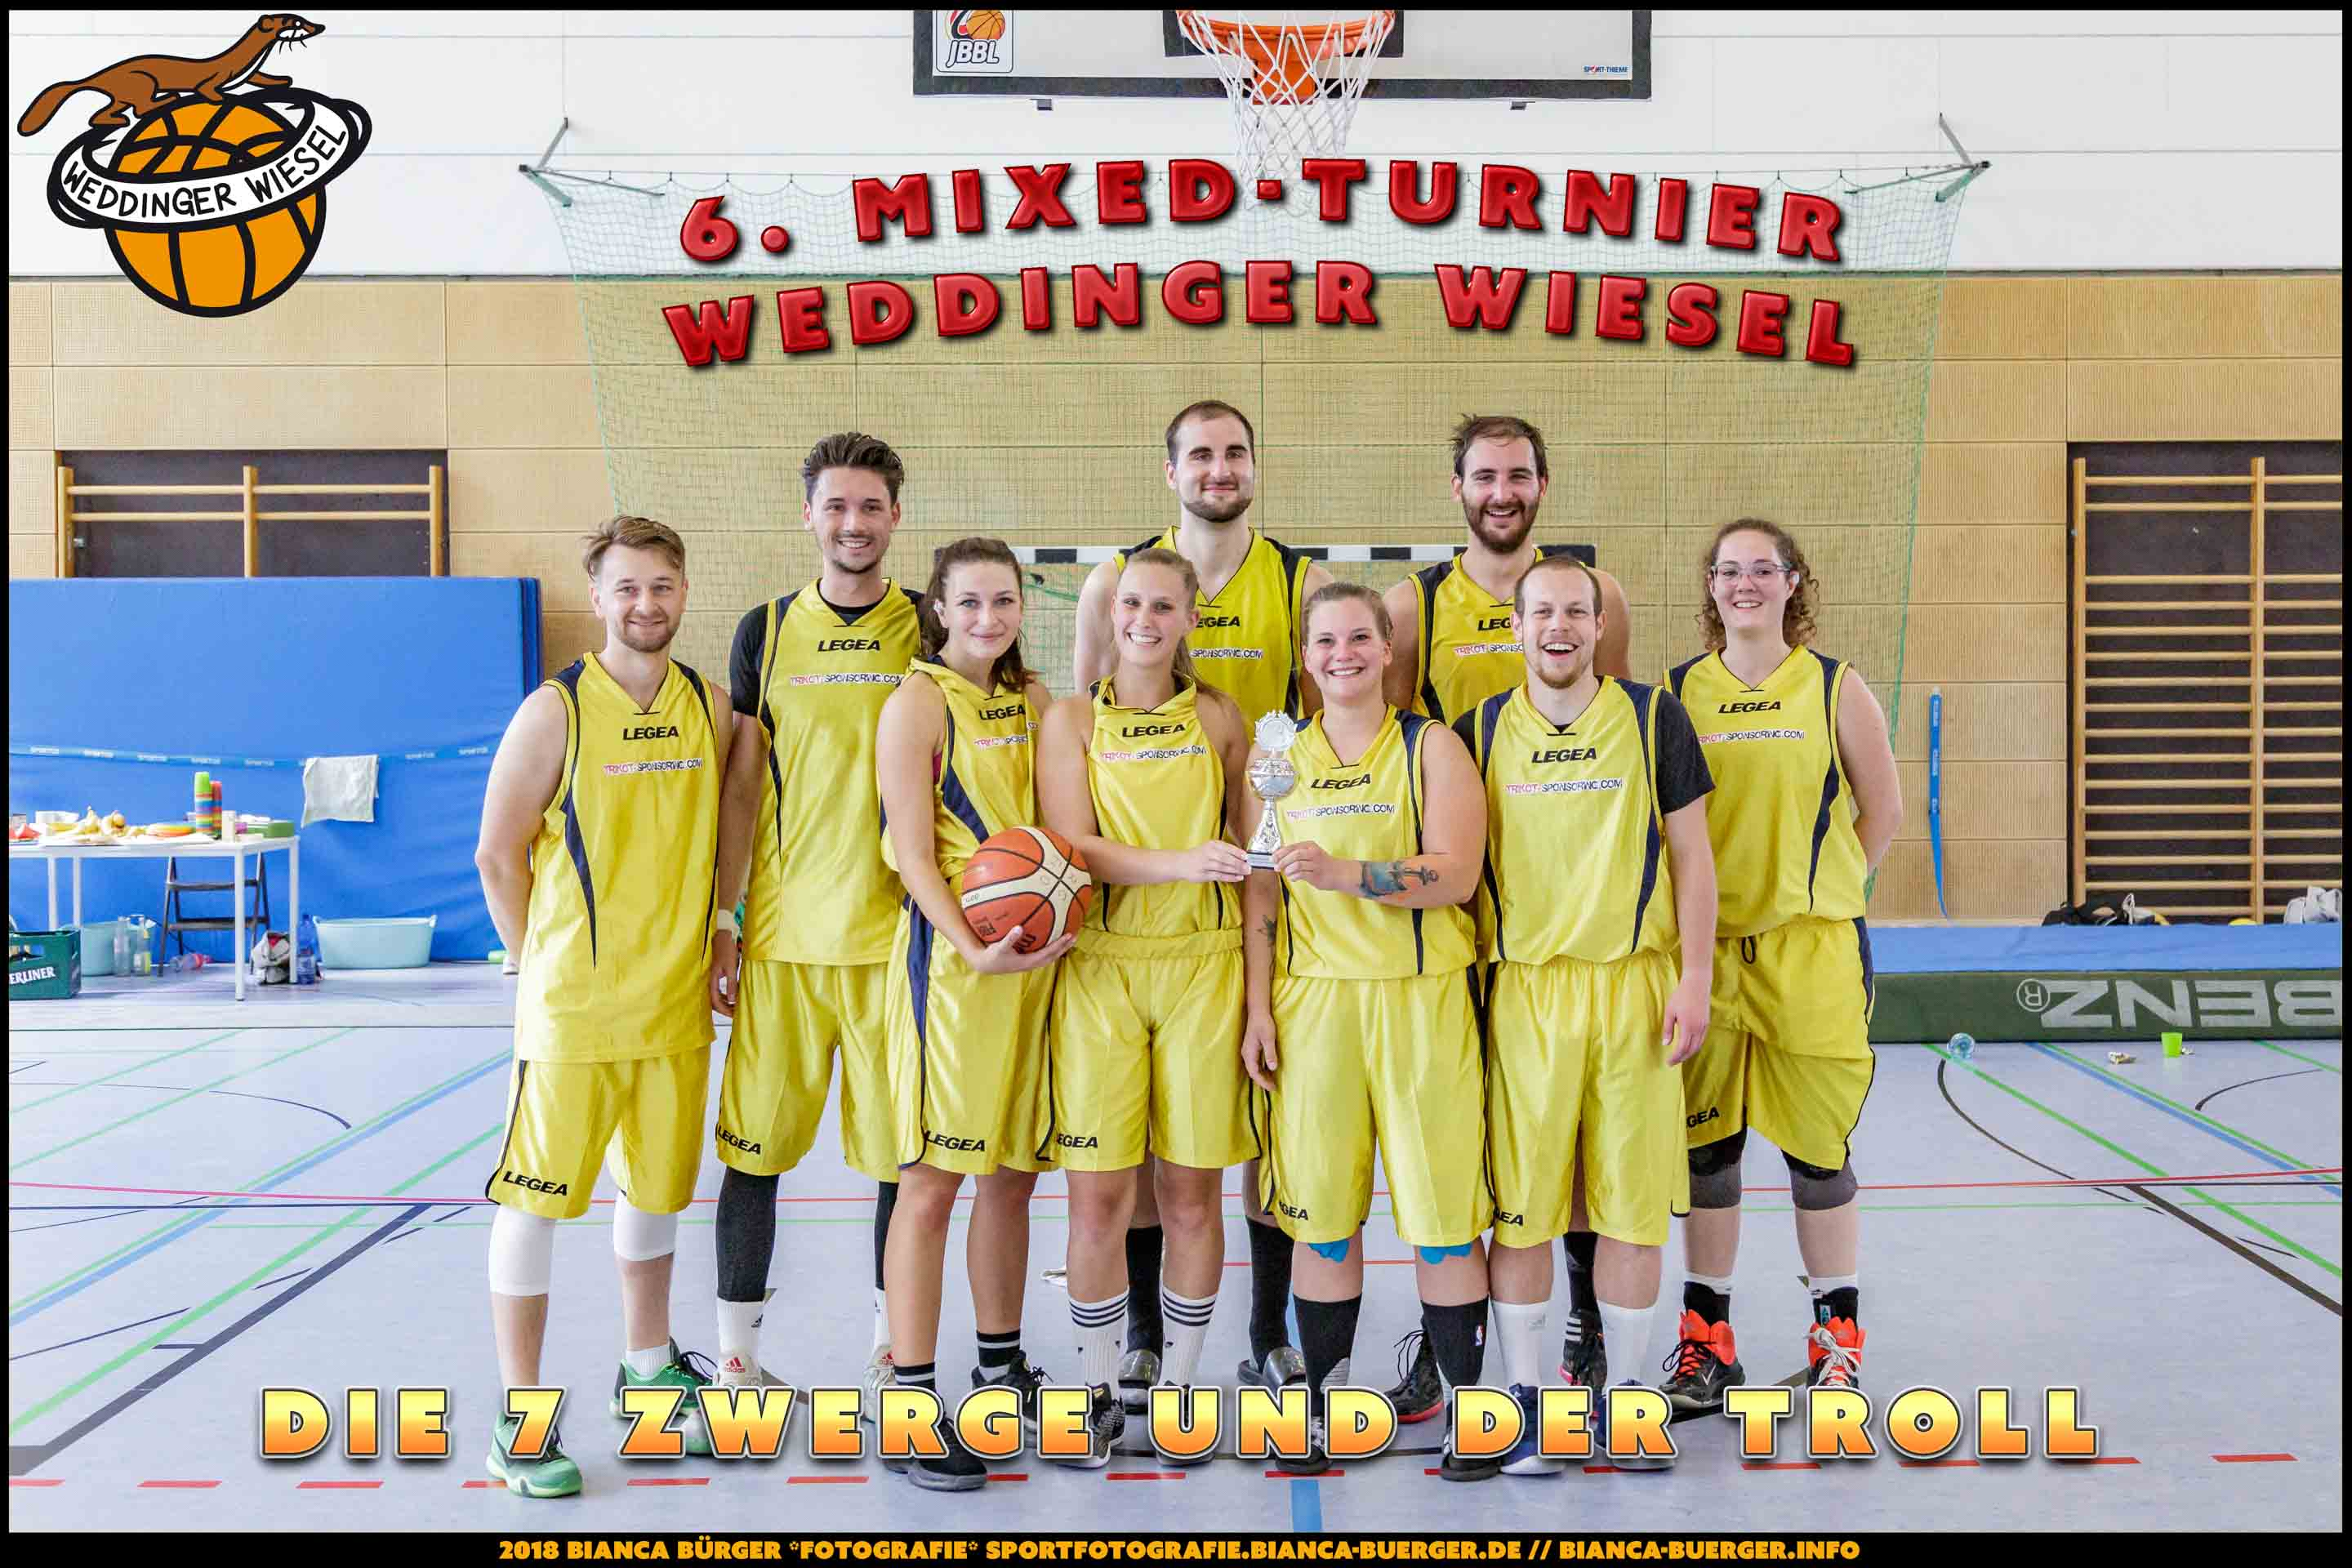 6. Mixed-Turnier der Weddinger Wiesel - Tag 2 (Basketball)